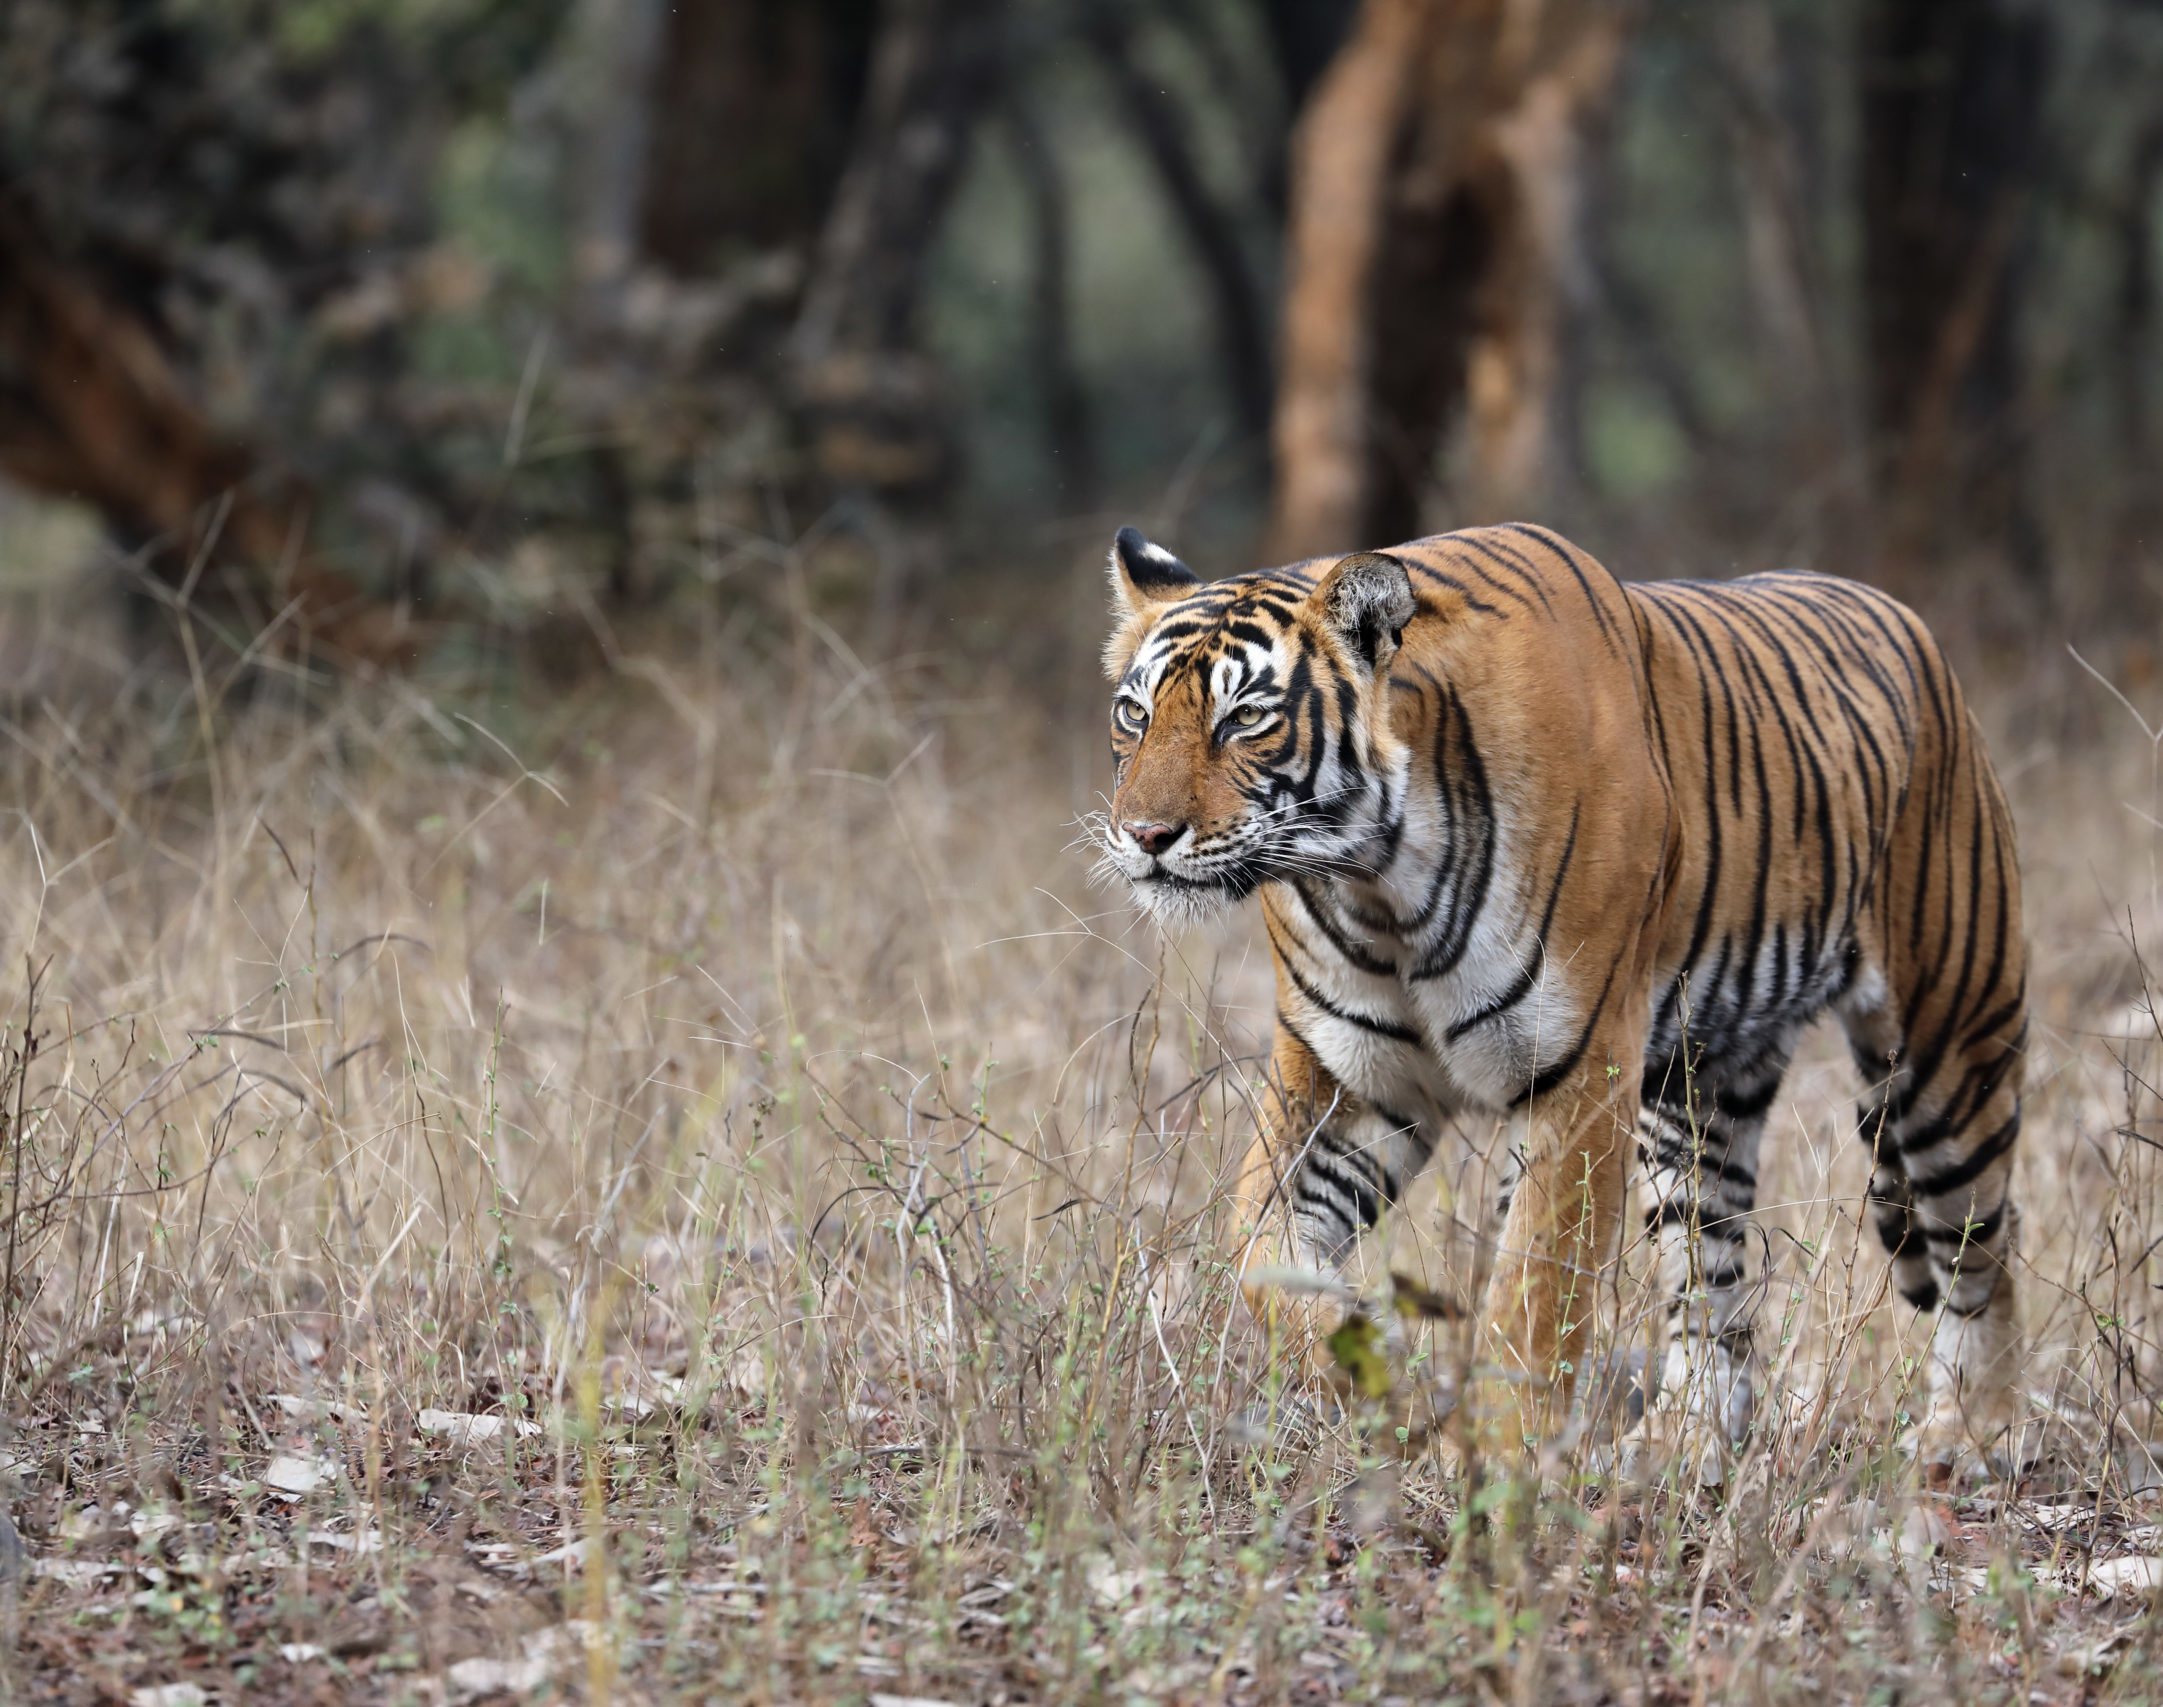 Bengal tiger in Ranthambore, India.